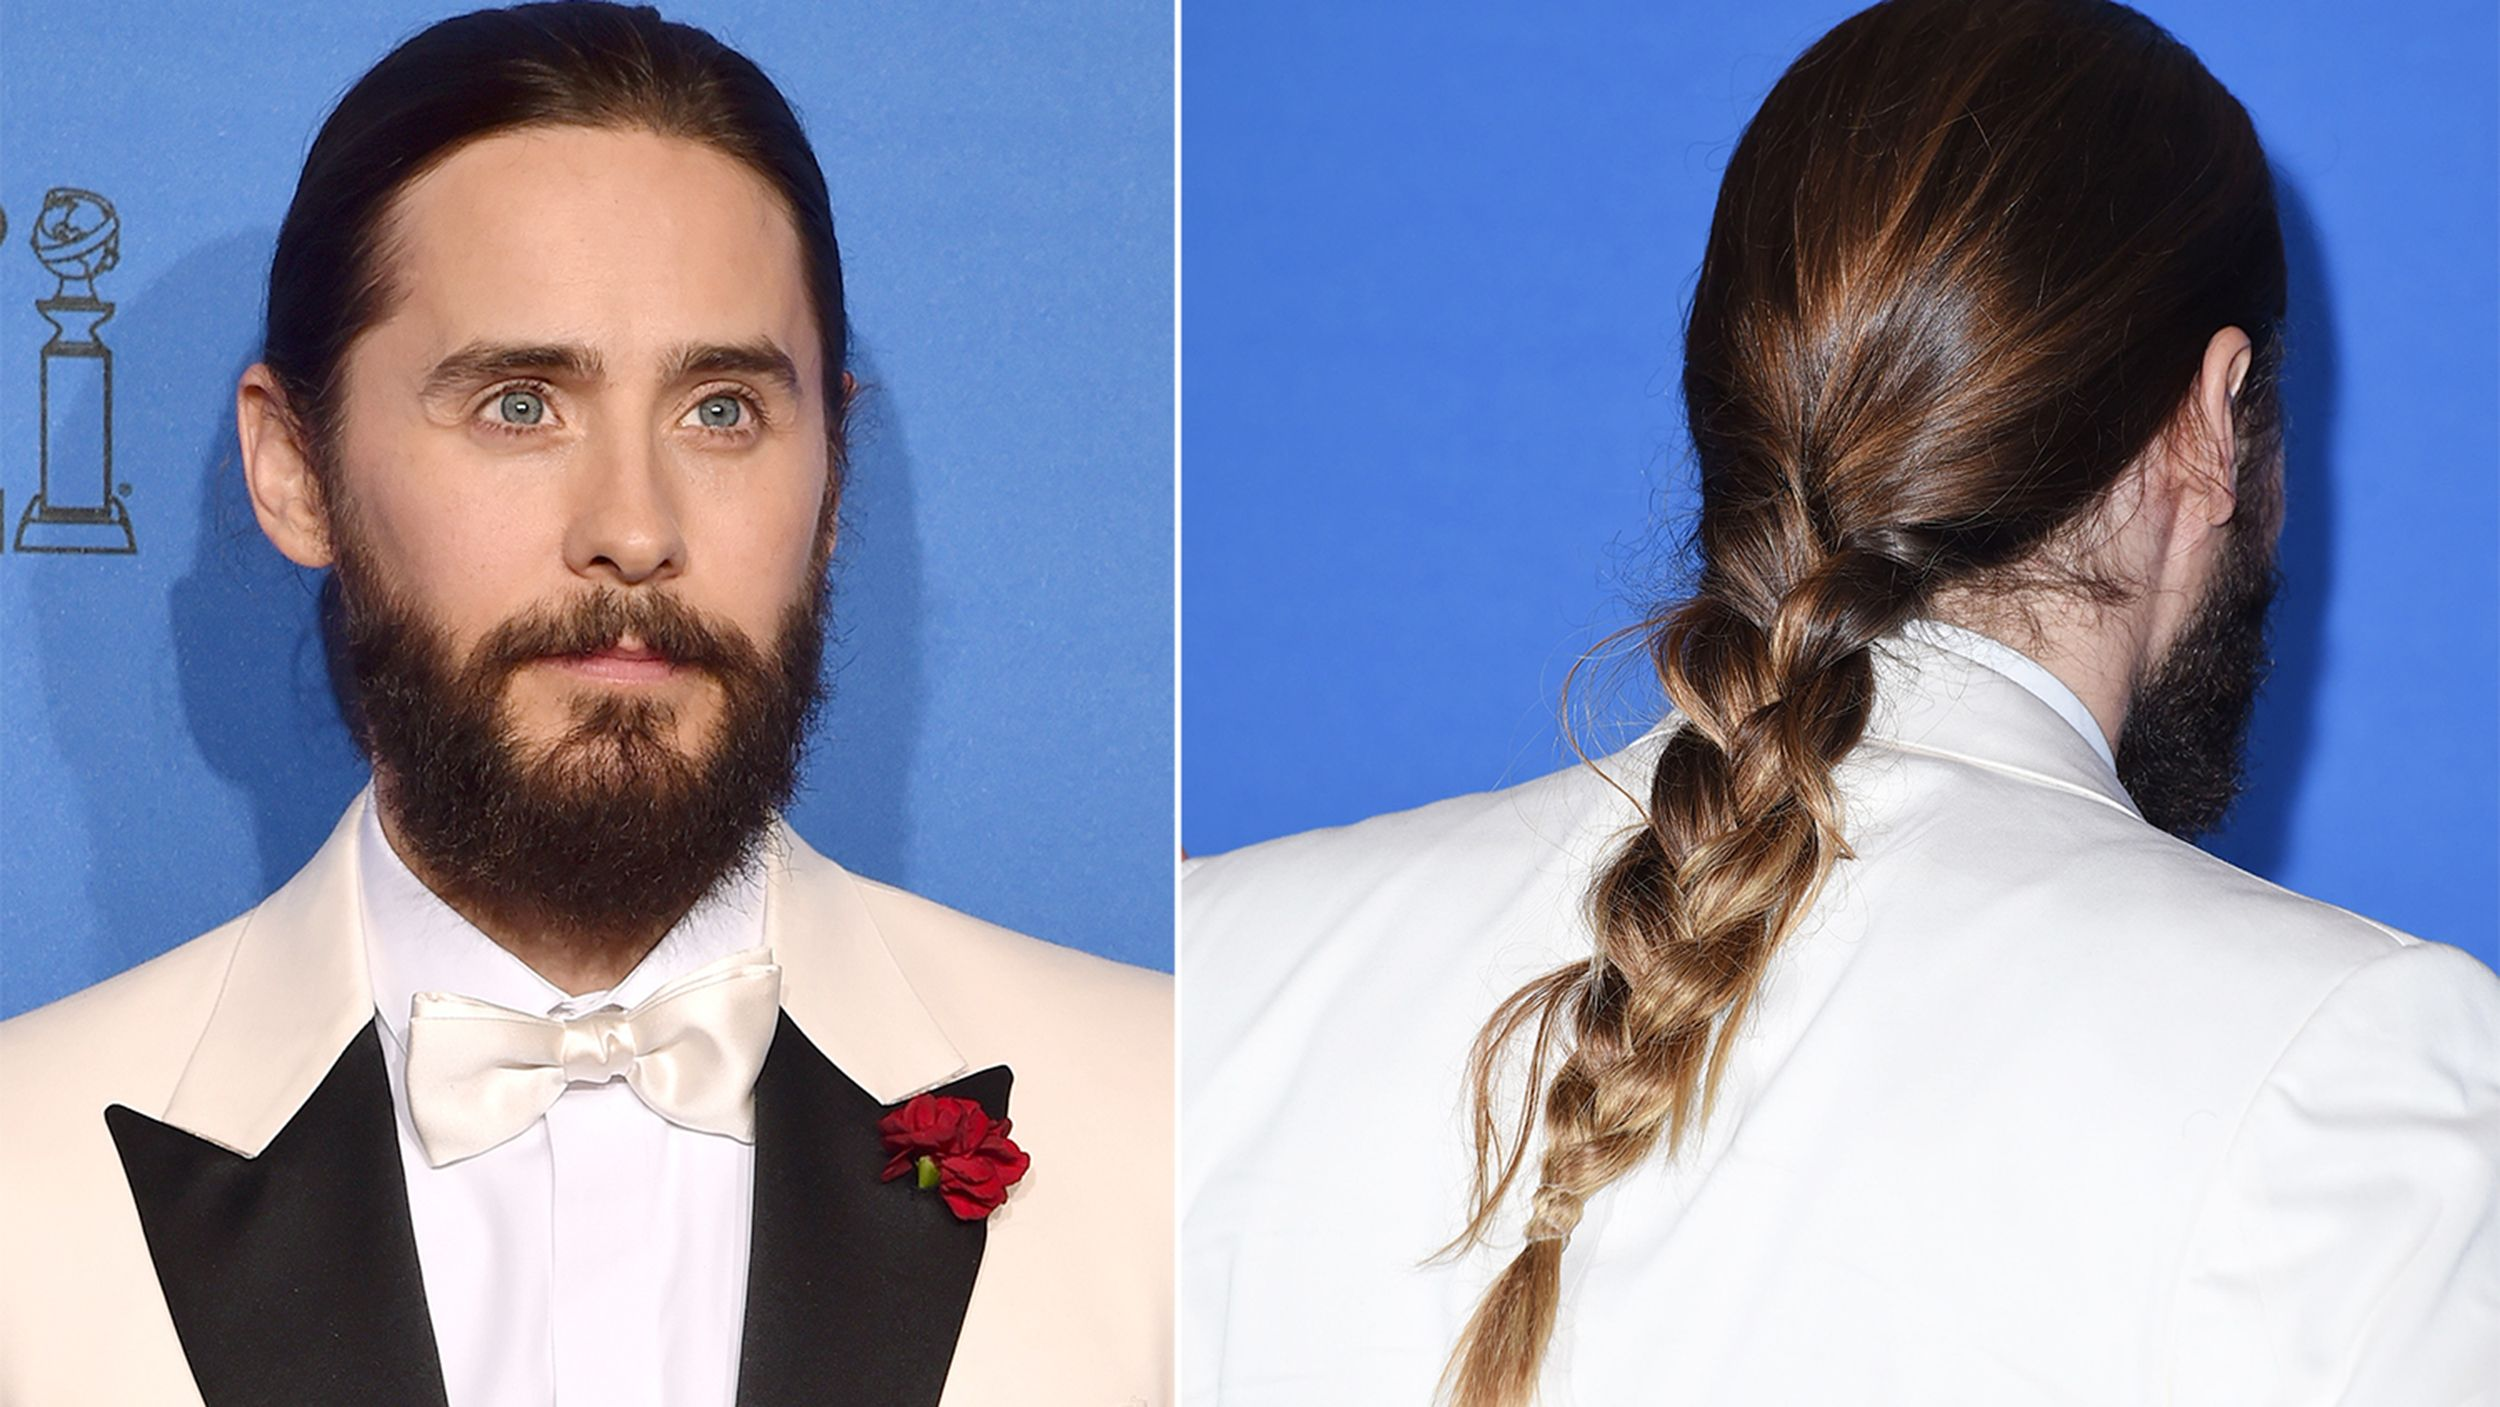 Man Buns Might Be A Thing Of The Past Now That Guys Are Rocking Man Braids